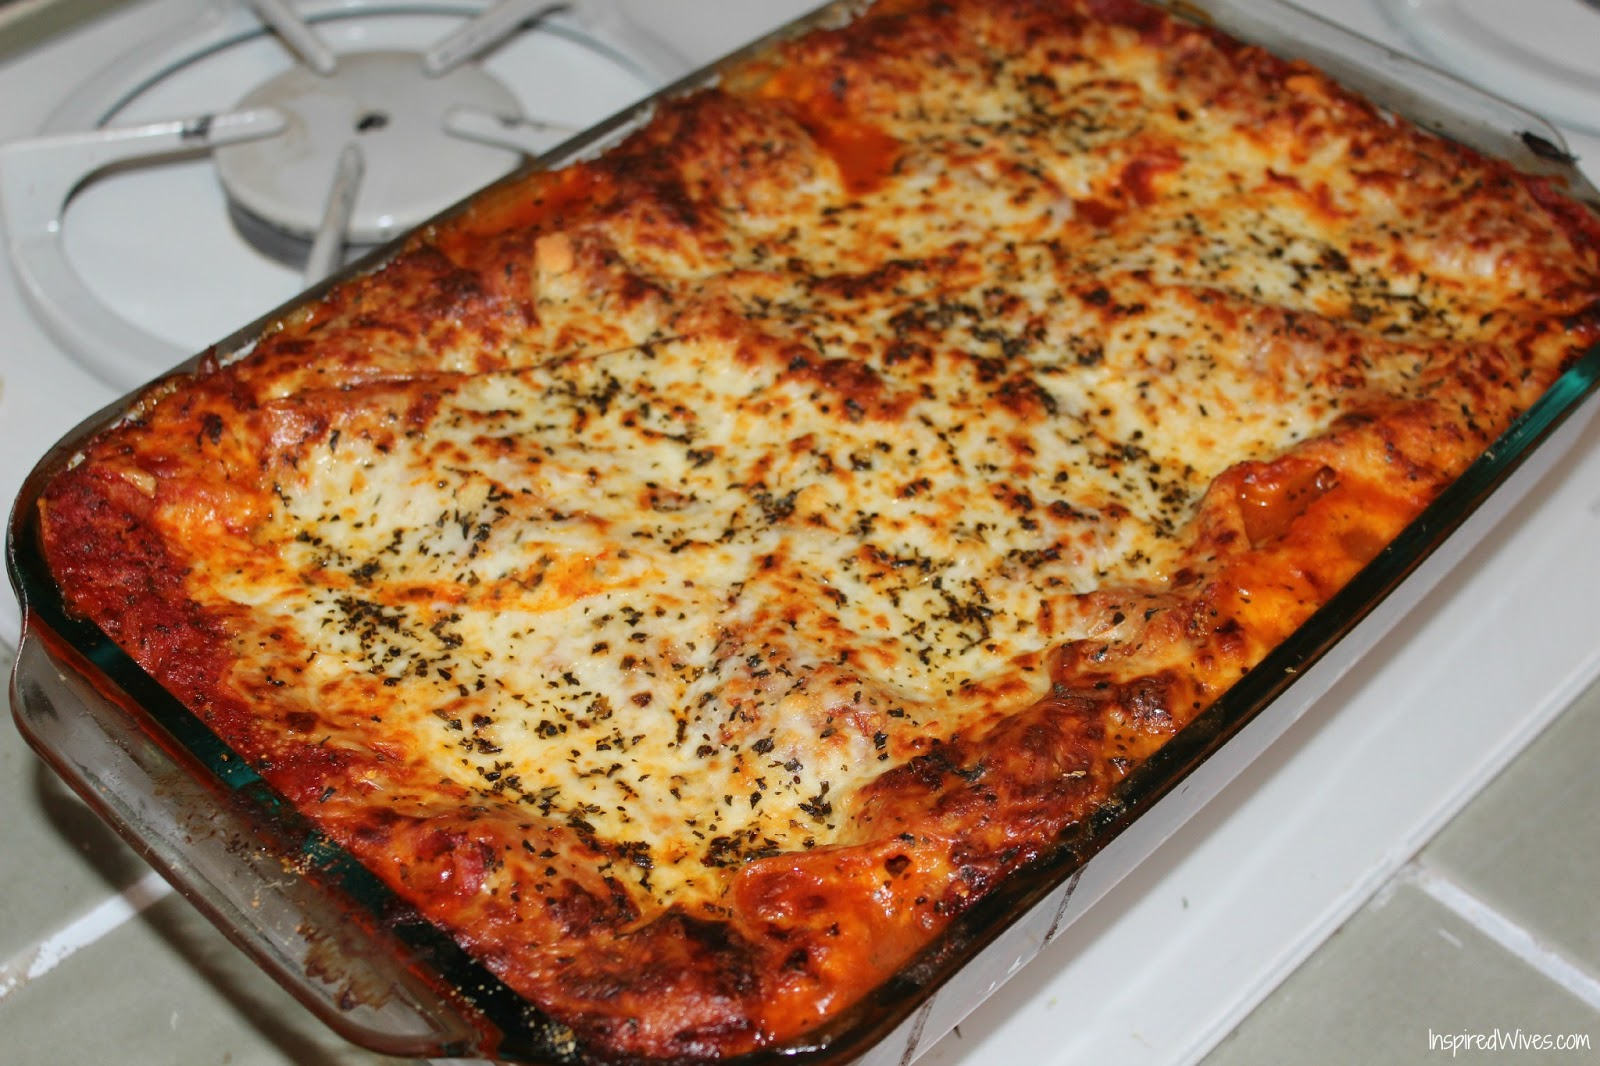 Last weekend, my sister and I made the yummiest vegetarian lasagna. We ...